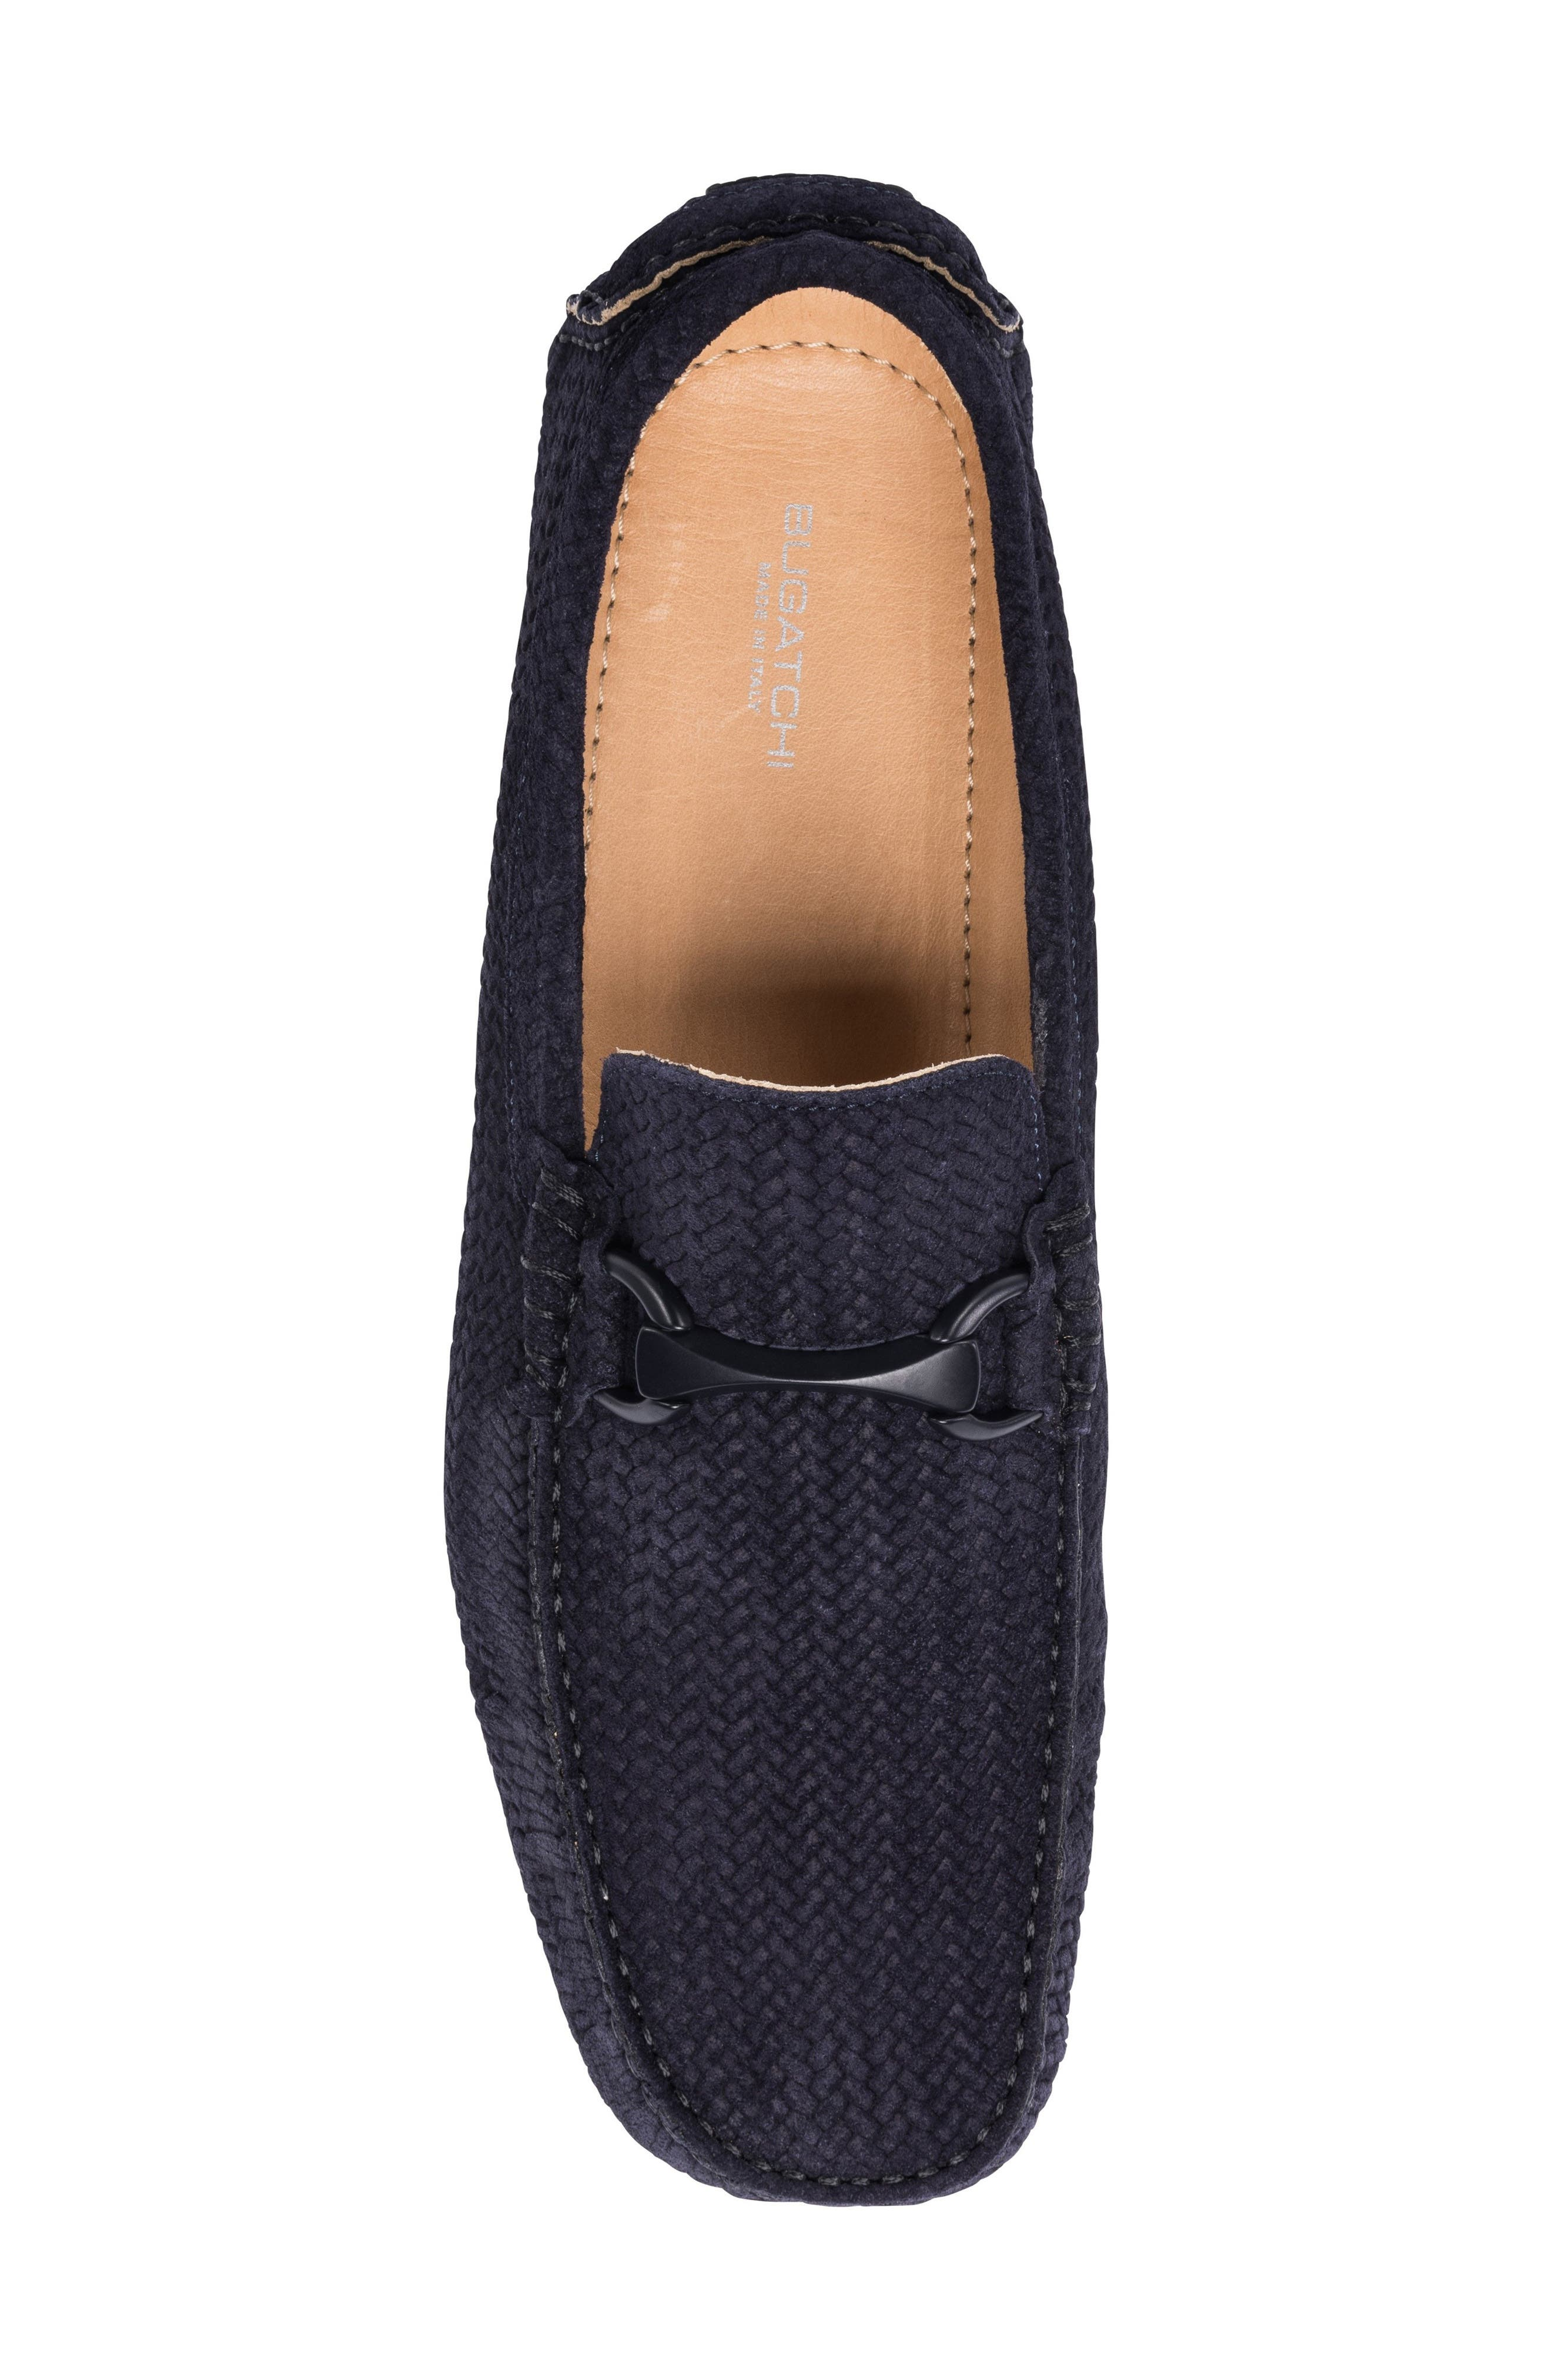 Amalfi Woven Bit Driving Loafer,                             Alternate thumbnail 4, color,                             Blue Suede